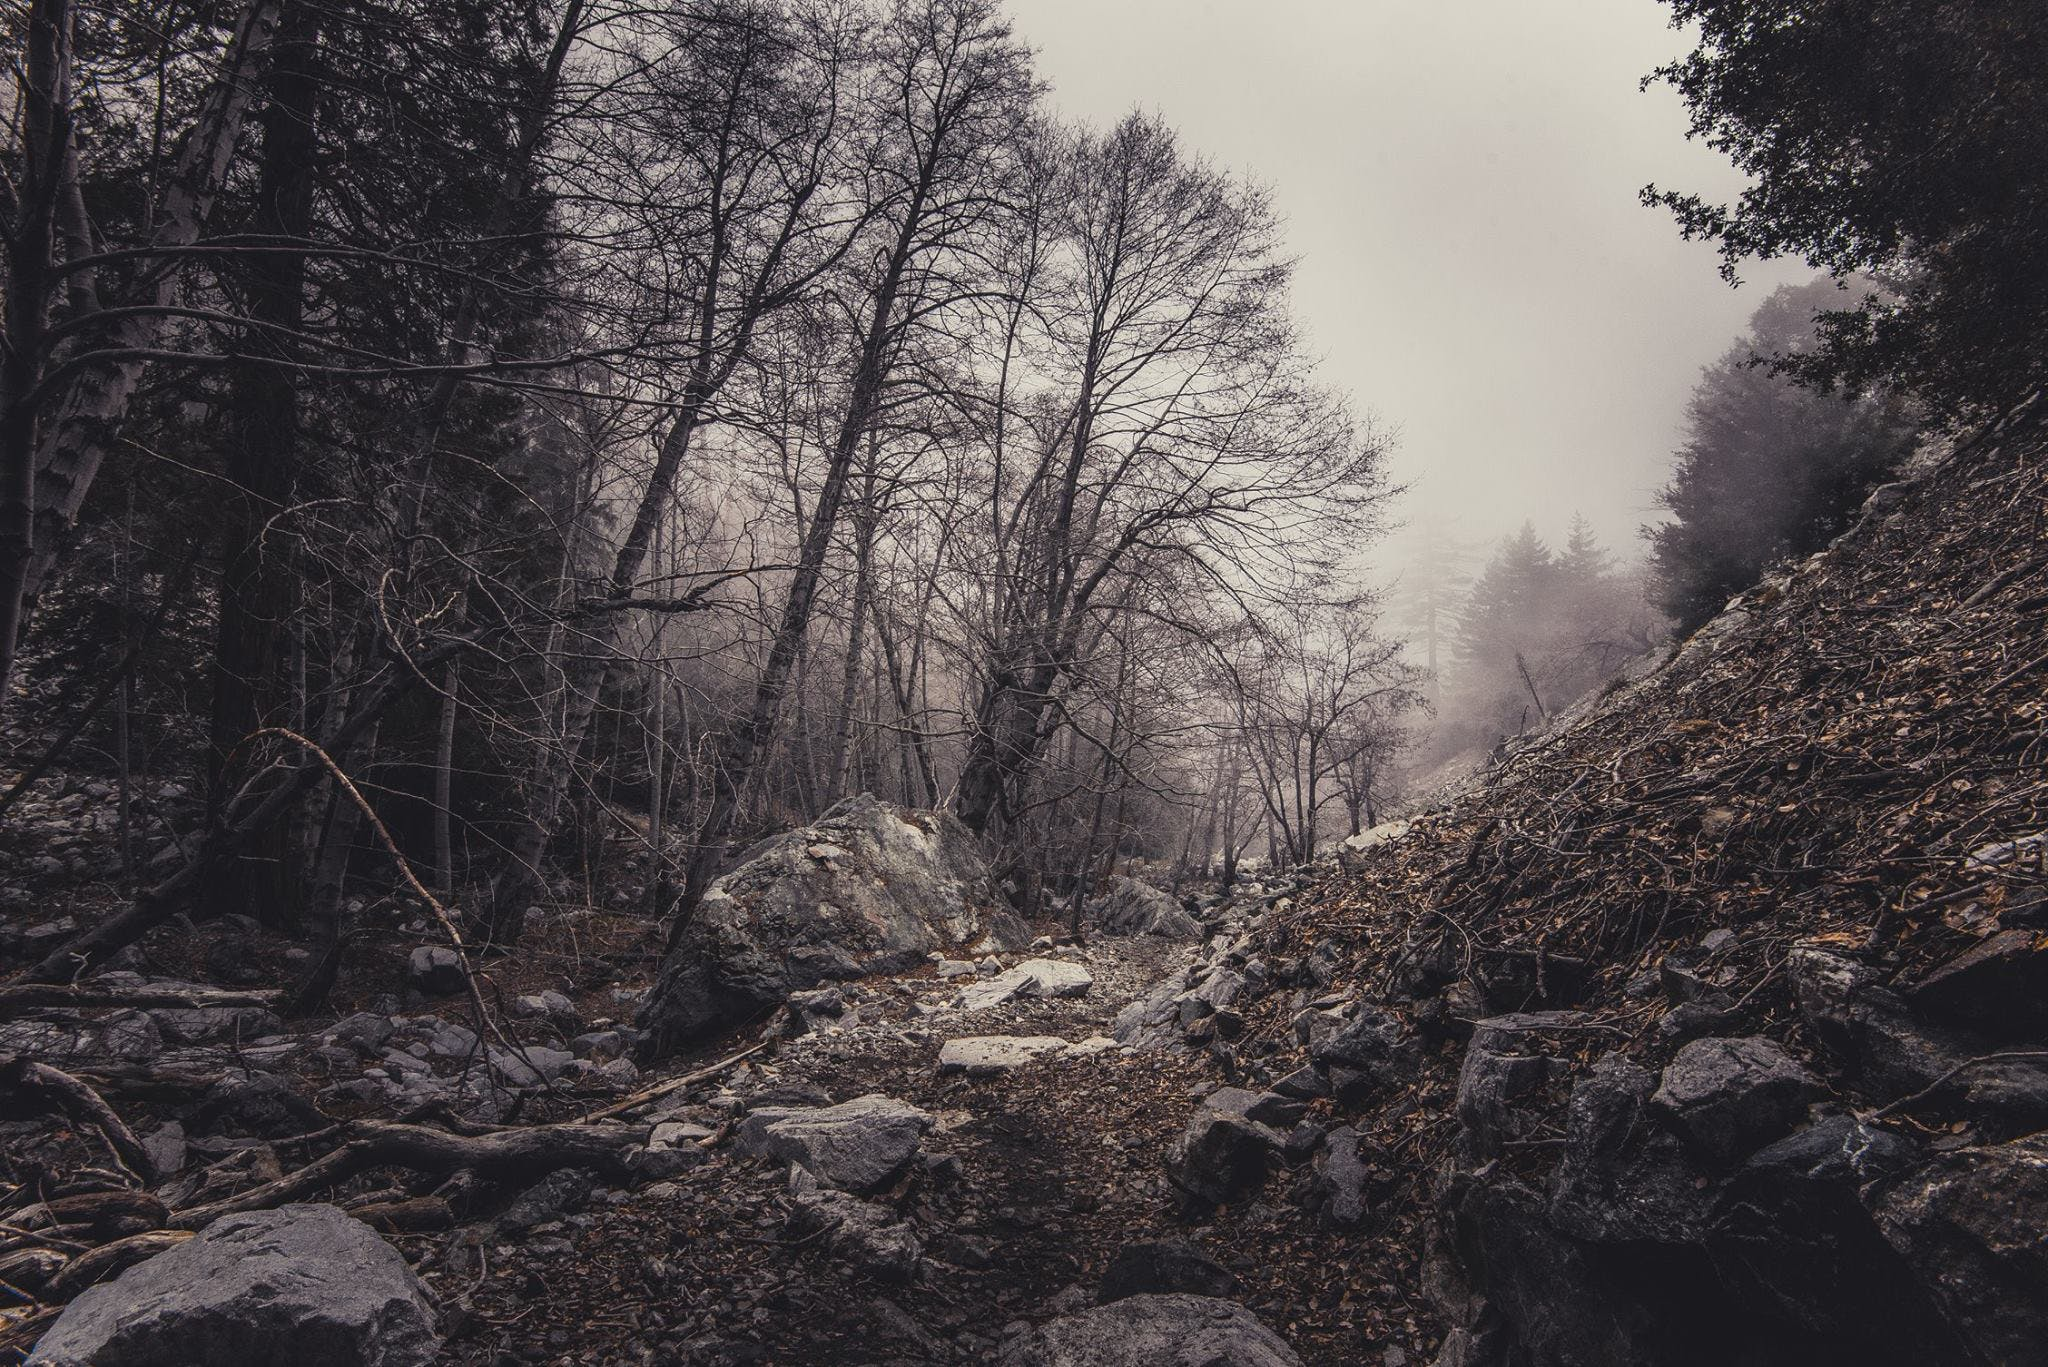 Free stock photo of nature, dirty, rocks, forest